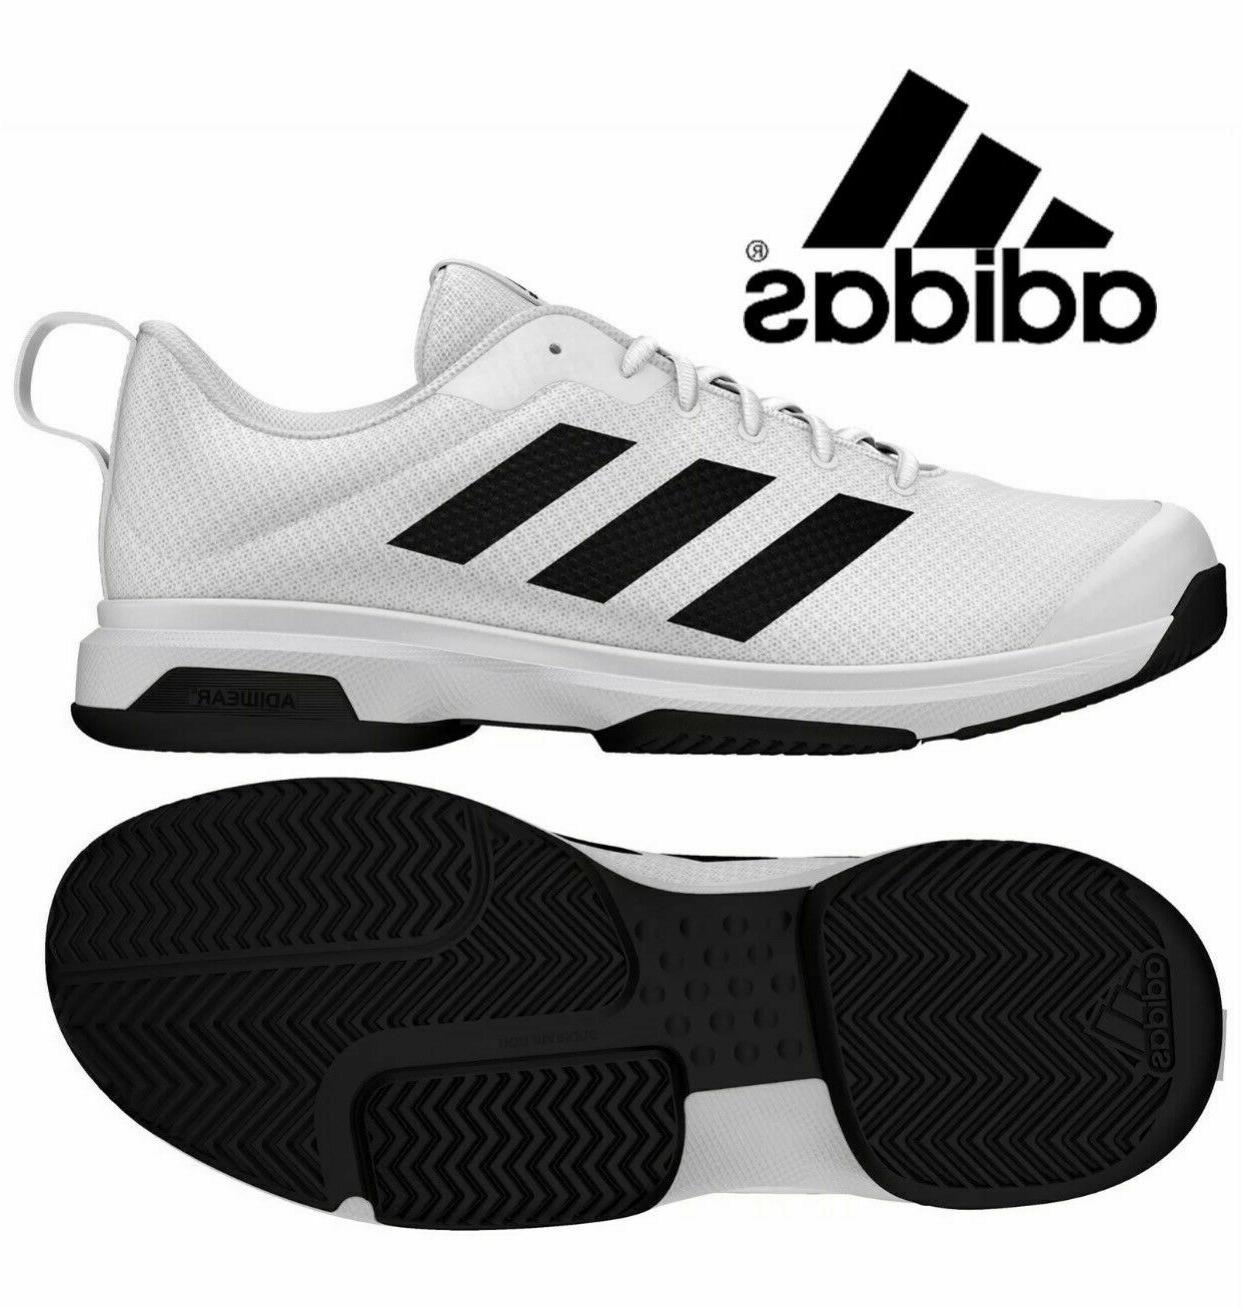 new mens tennis shoes game spec athletic